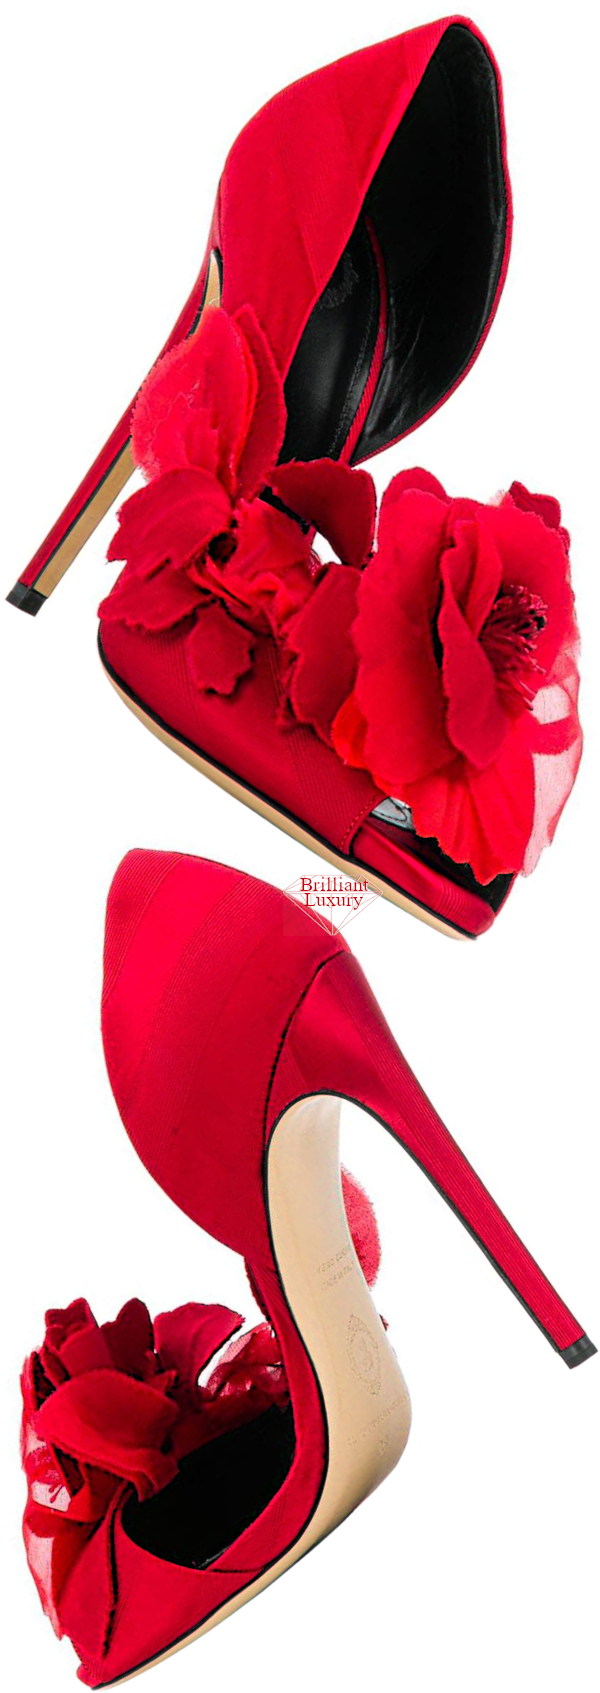 red Sofra pump #brilliantluxury